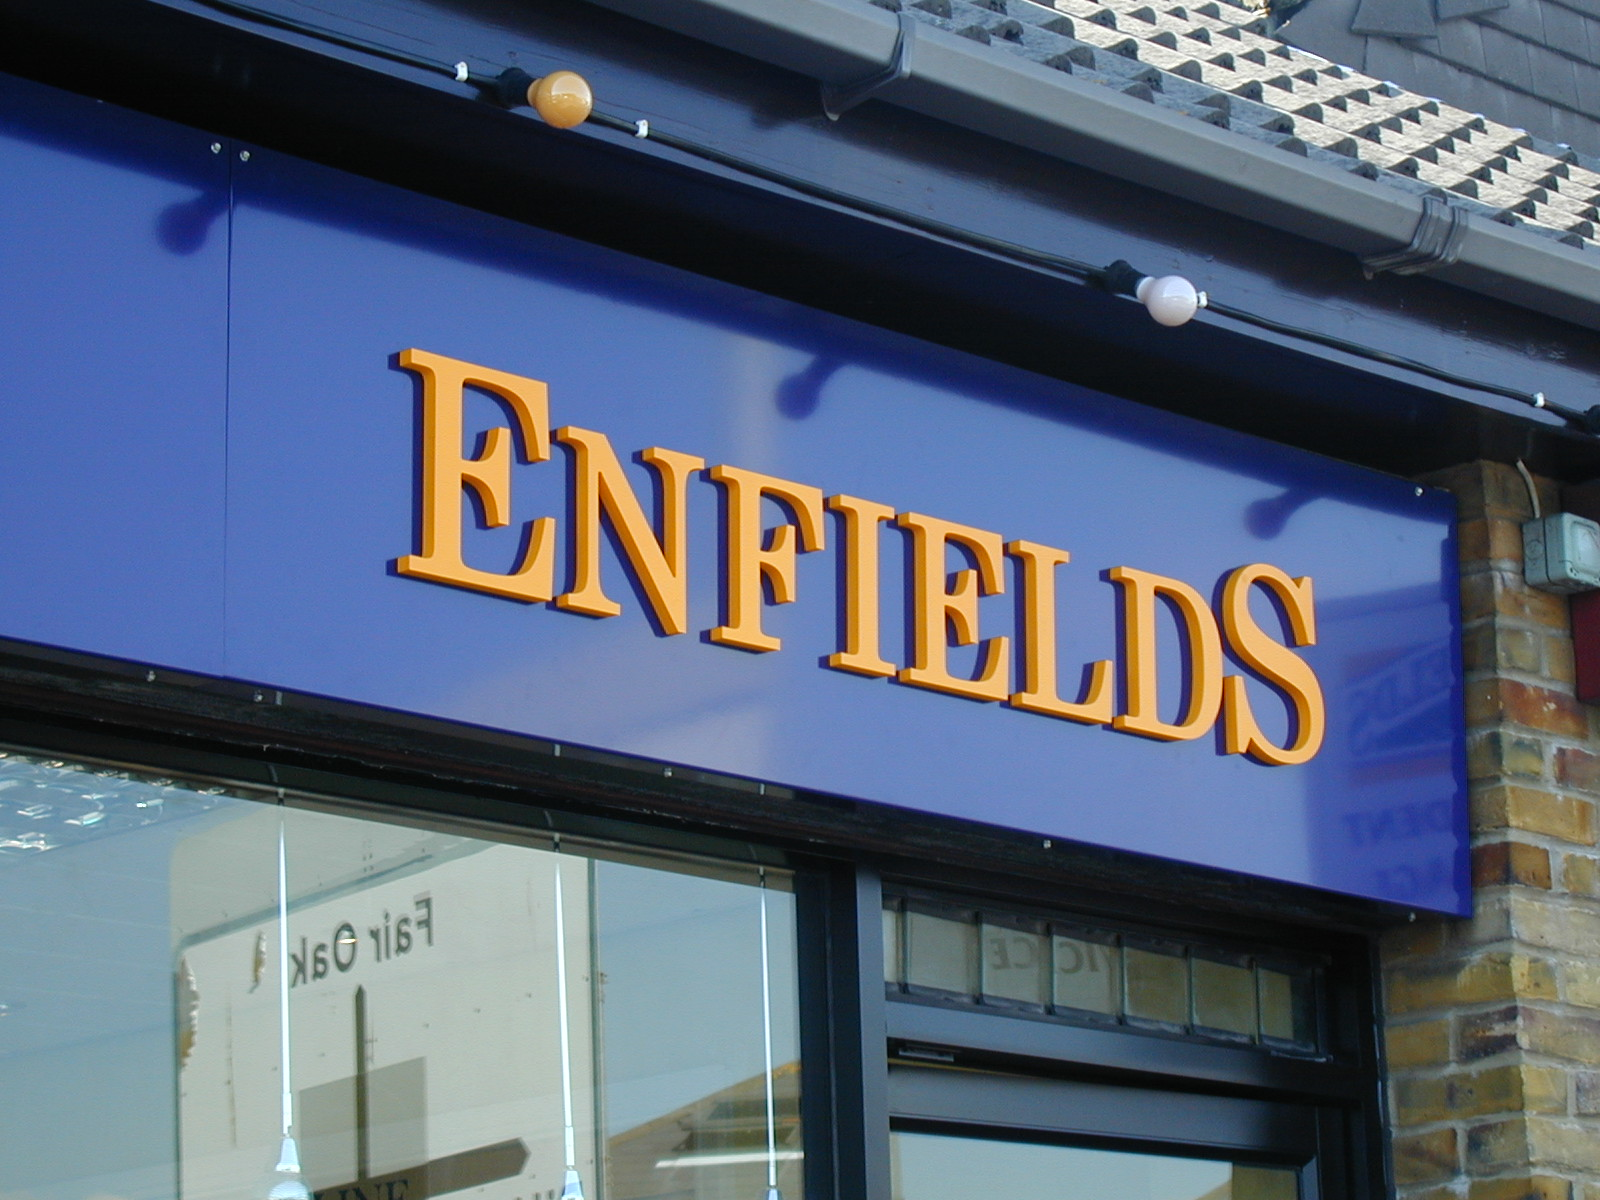 Enfields hedge end 9